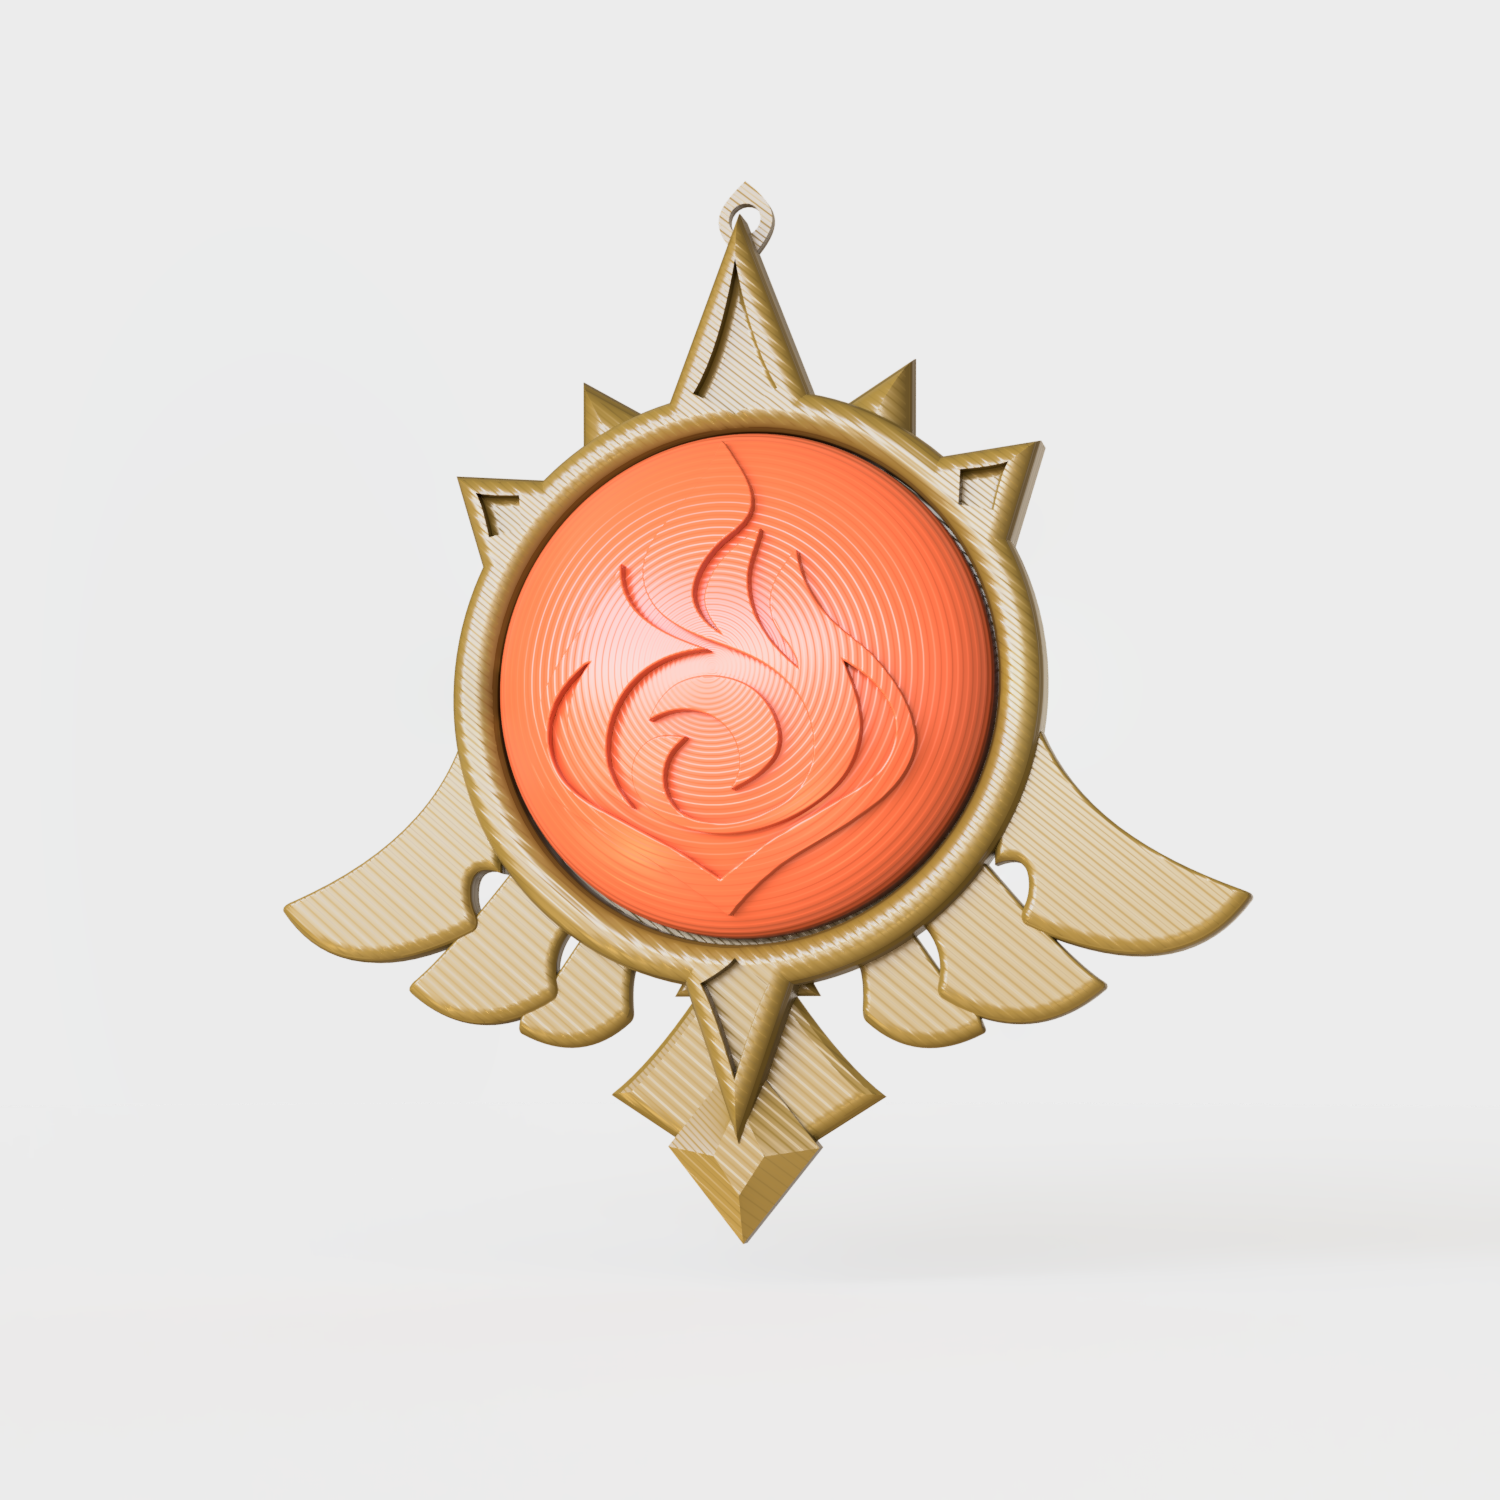 Brasao_Pyro_2020-Oct-05_03-35-39PM-000_CustomizedView2583160751_png.png Download STL file Pendant Pyro Amber - Genshin Impact • Template to 3D print, Geandro_Valcorte